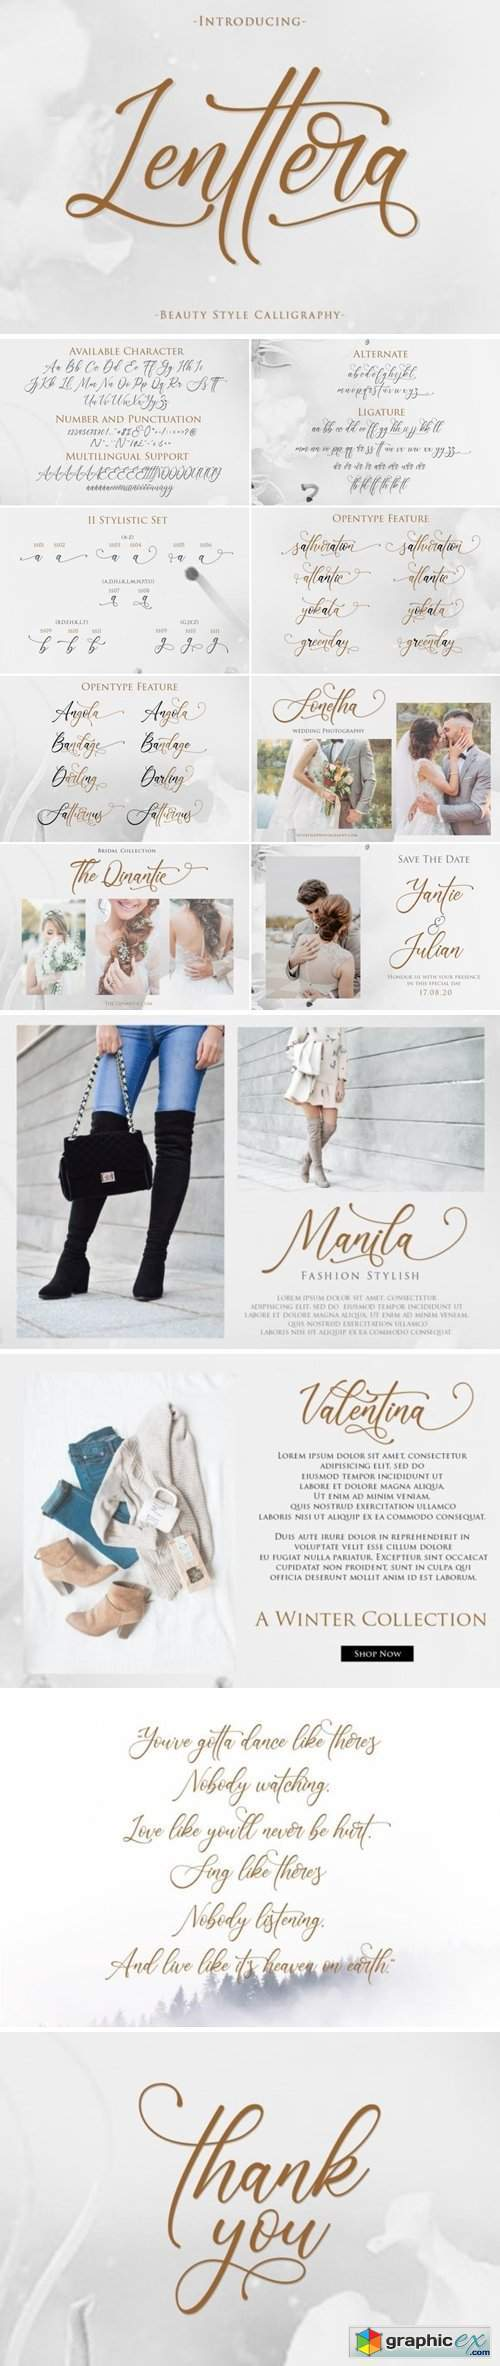 Lenttera | Beauty Style Calligraphy